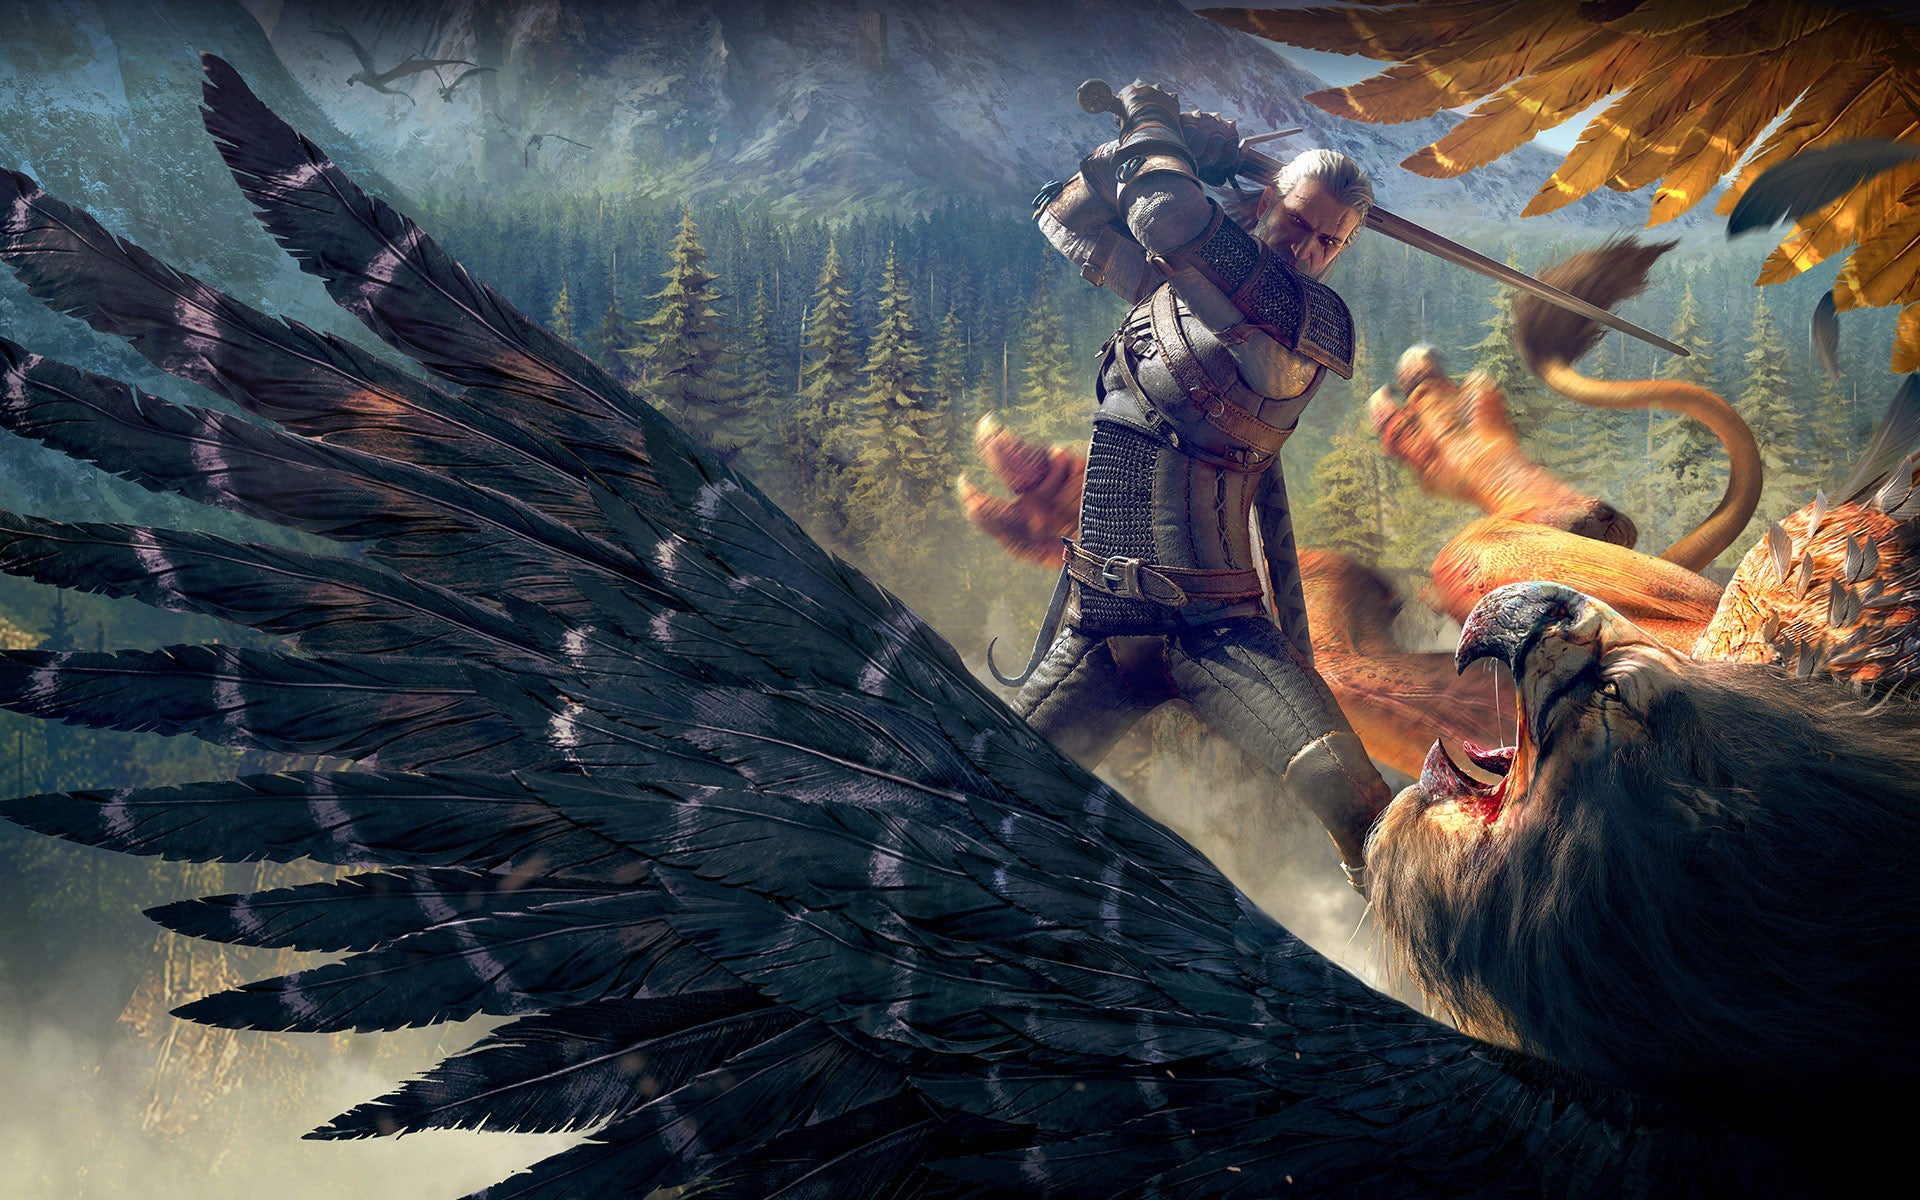 The Witcher 3 Leaks Early, Beware Spoilers